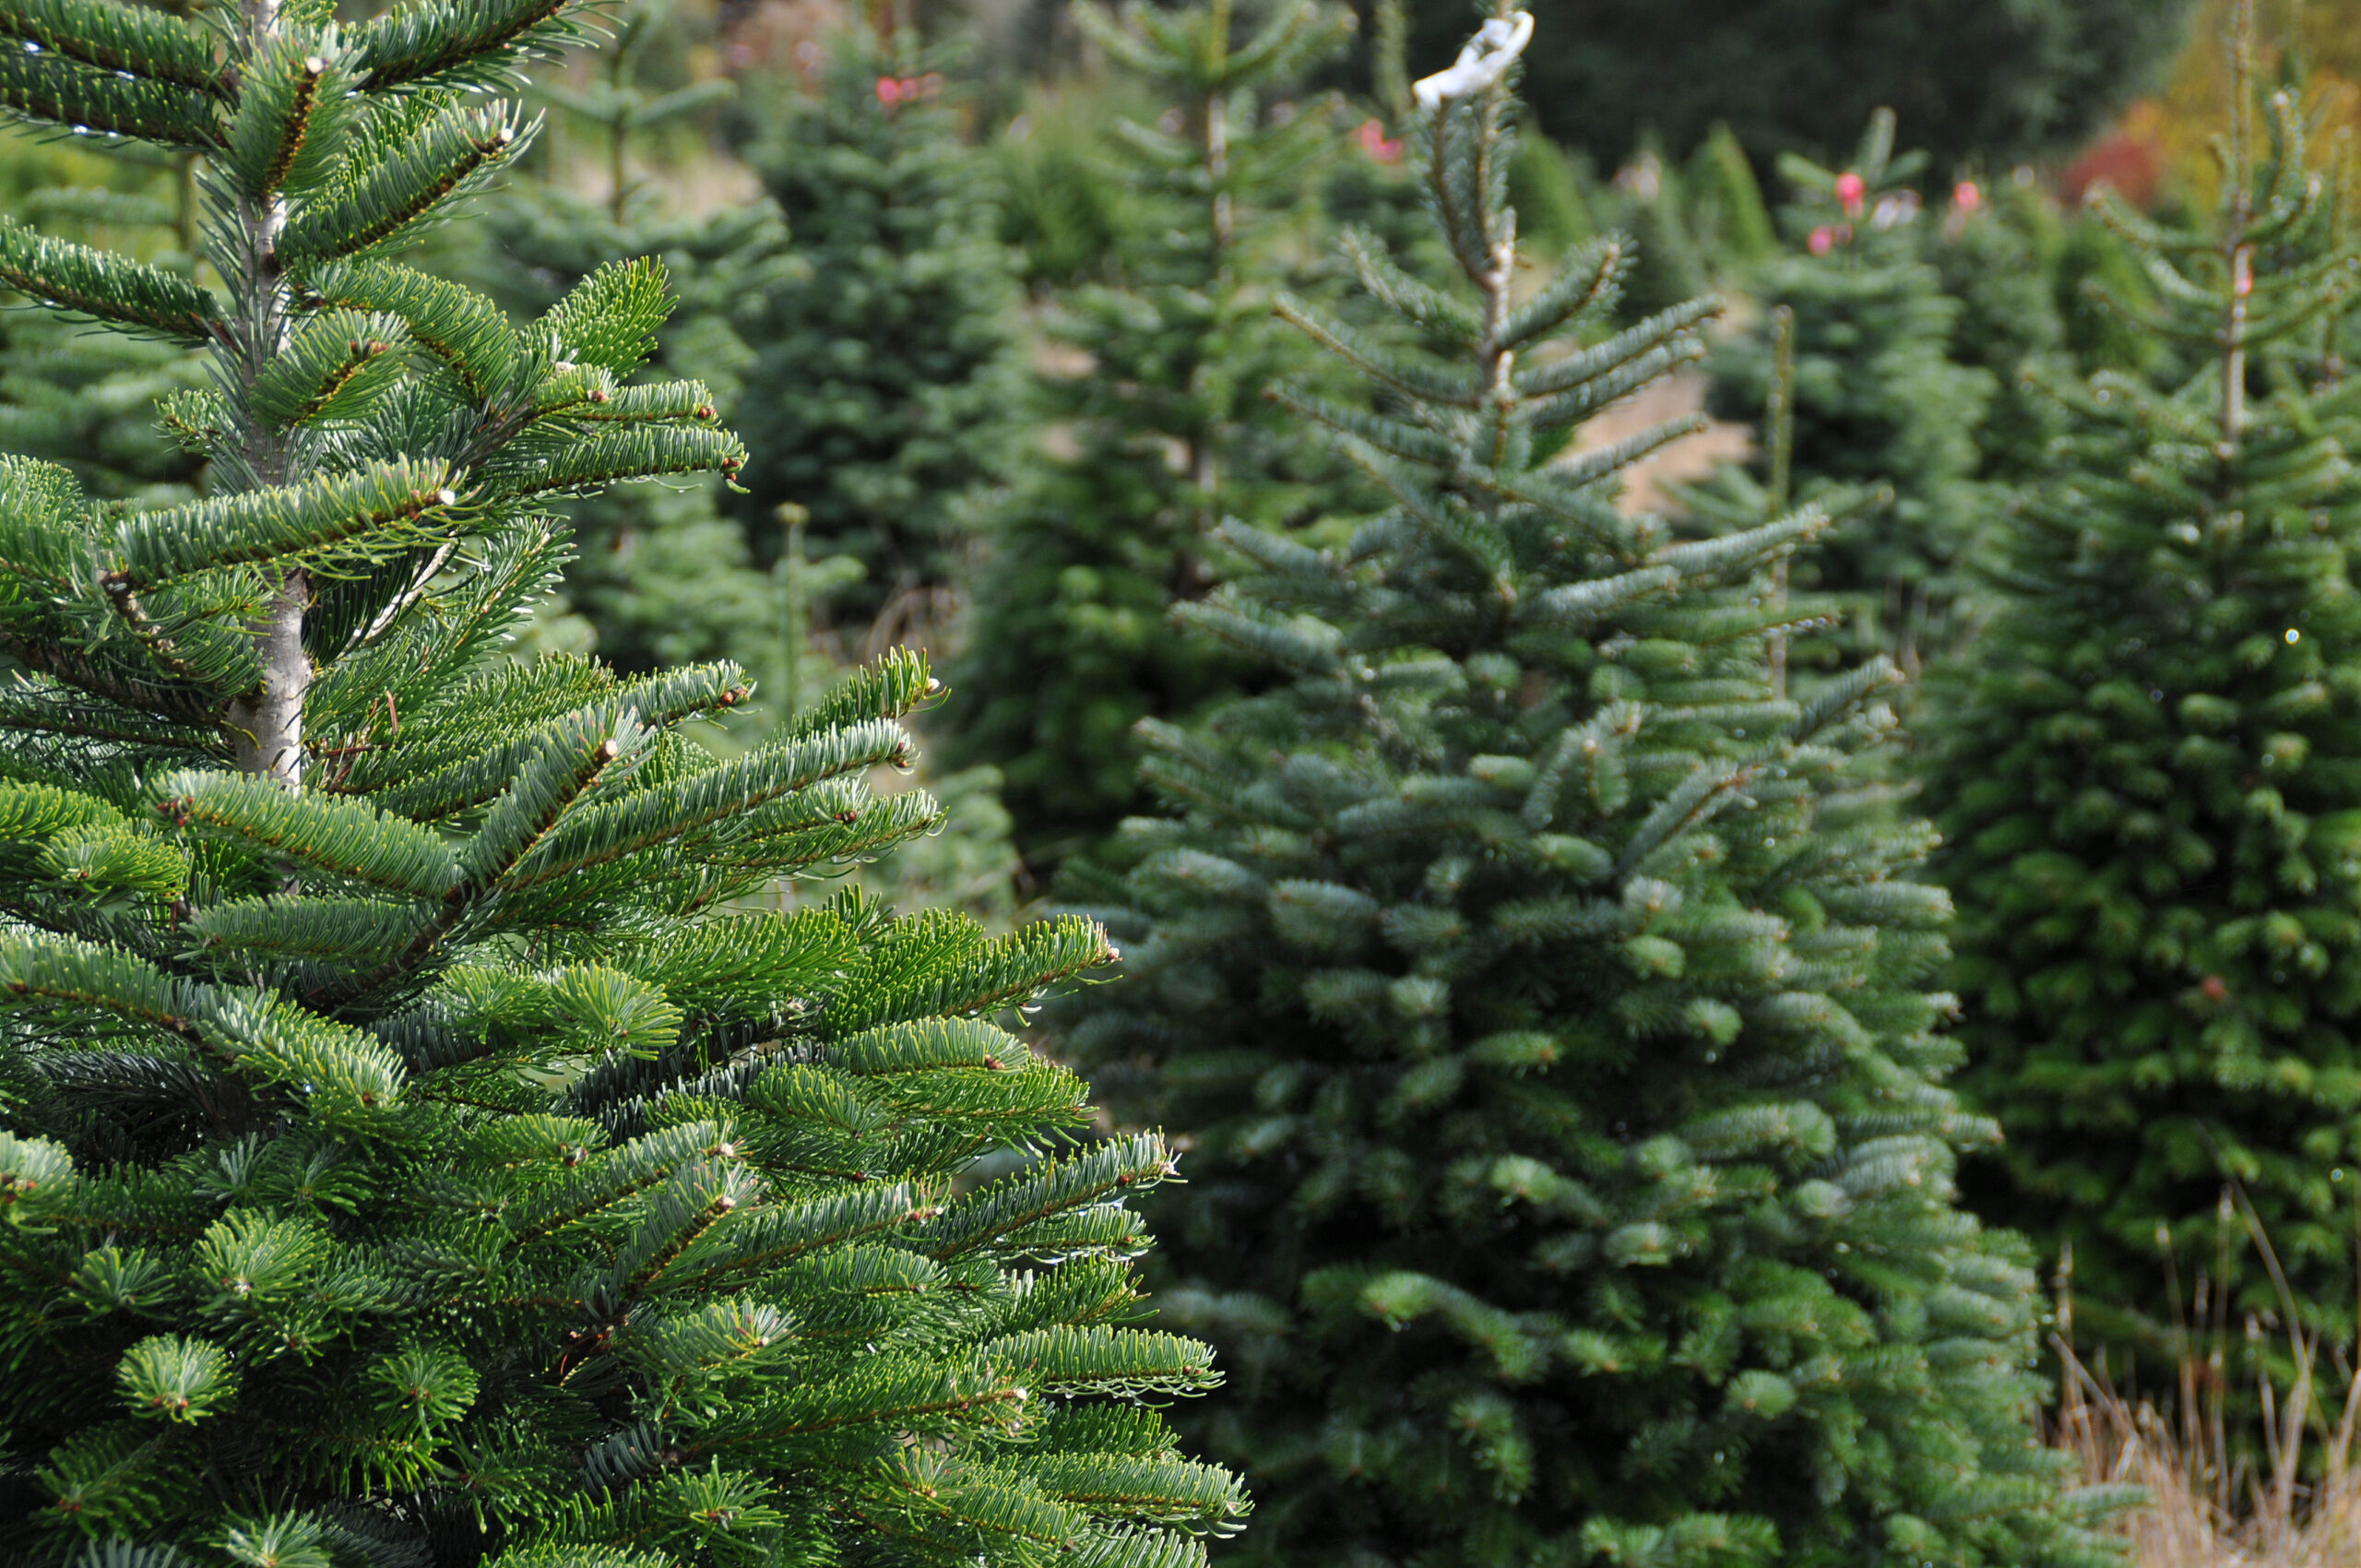 How to Decide Between Flocked and Regular Artificial Christmas Trees